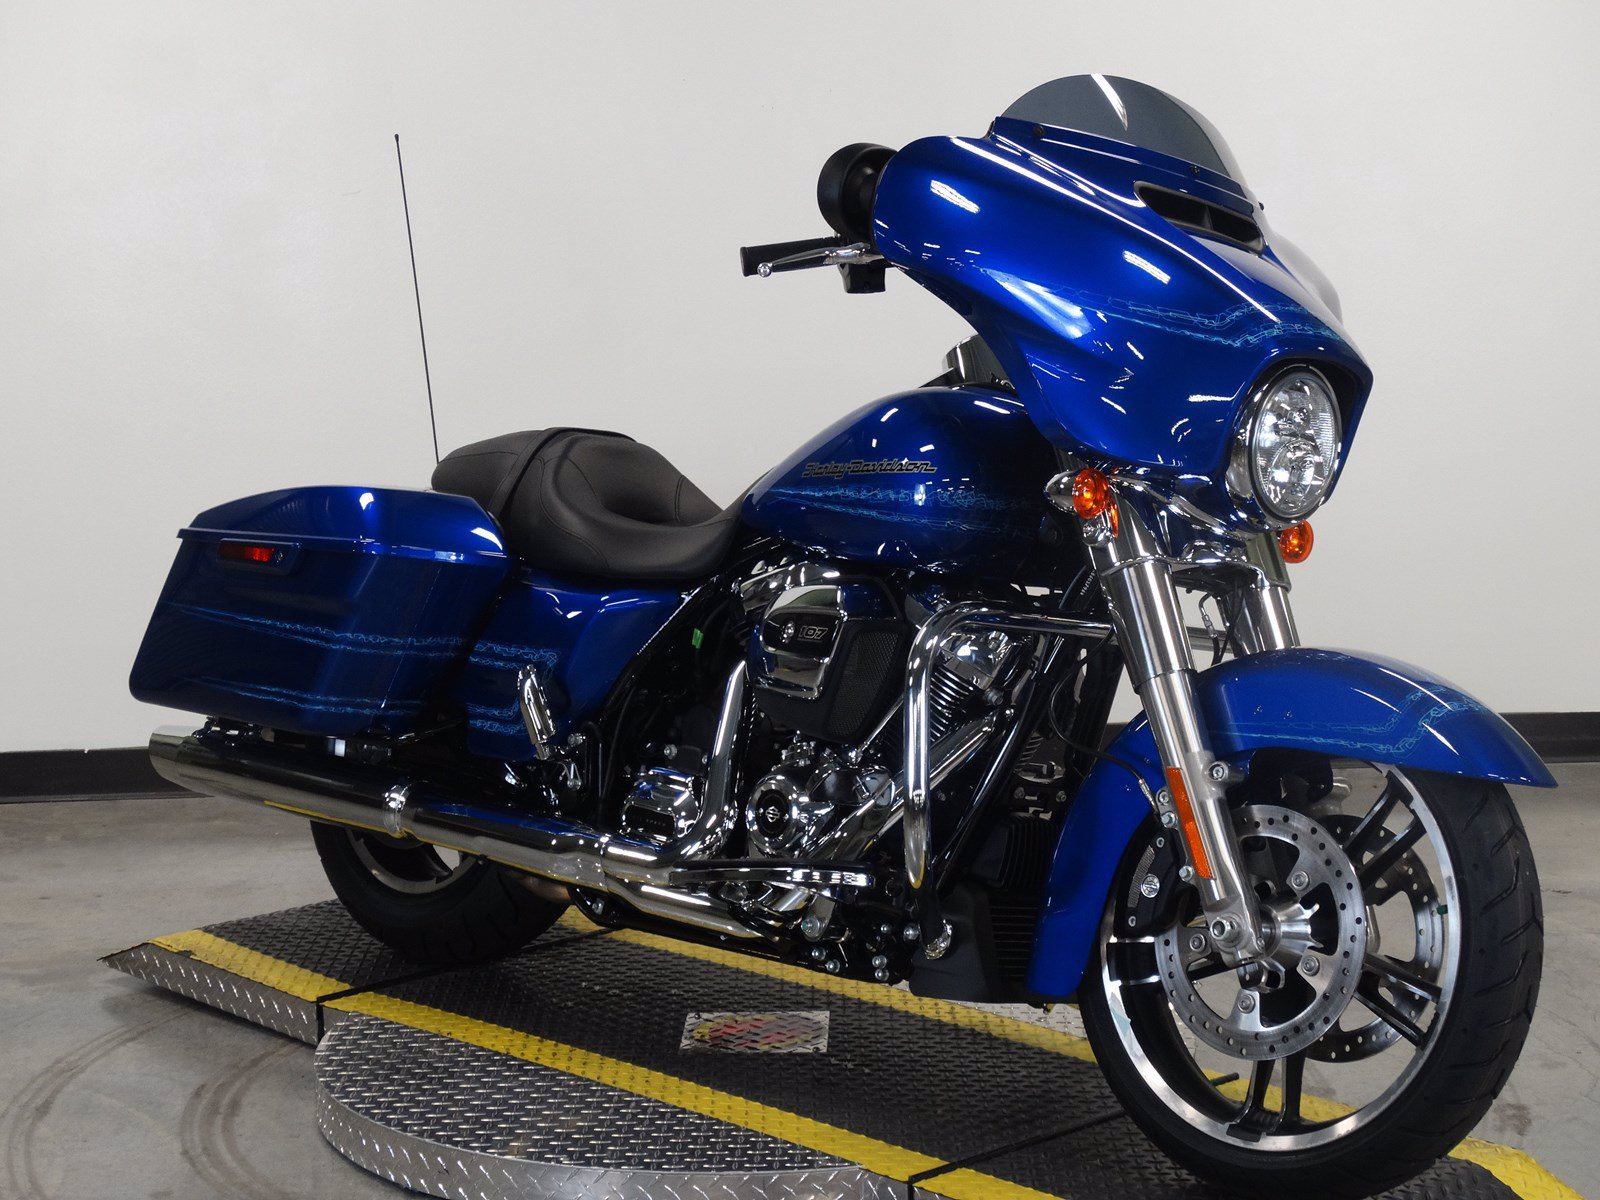 New 2019 Harley-Davidson Street Glide FLHX Touring in Fort ...